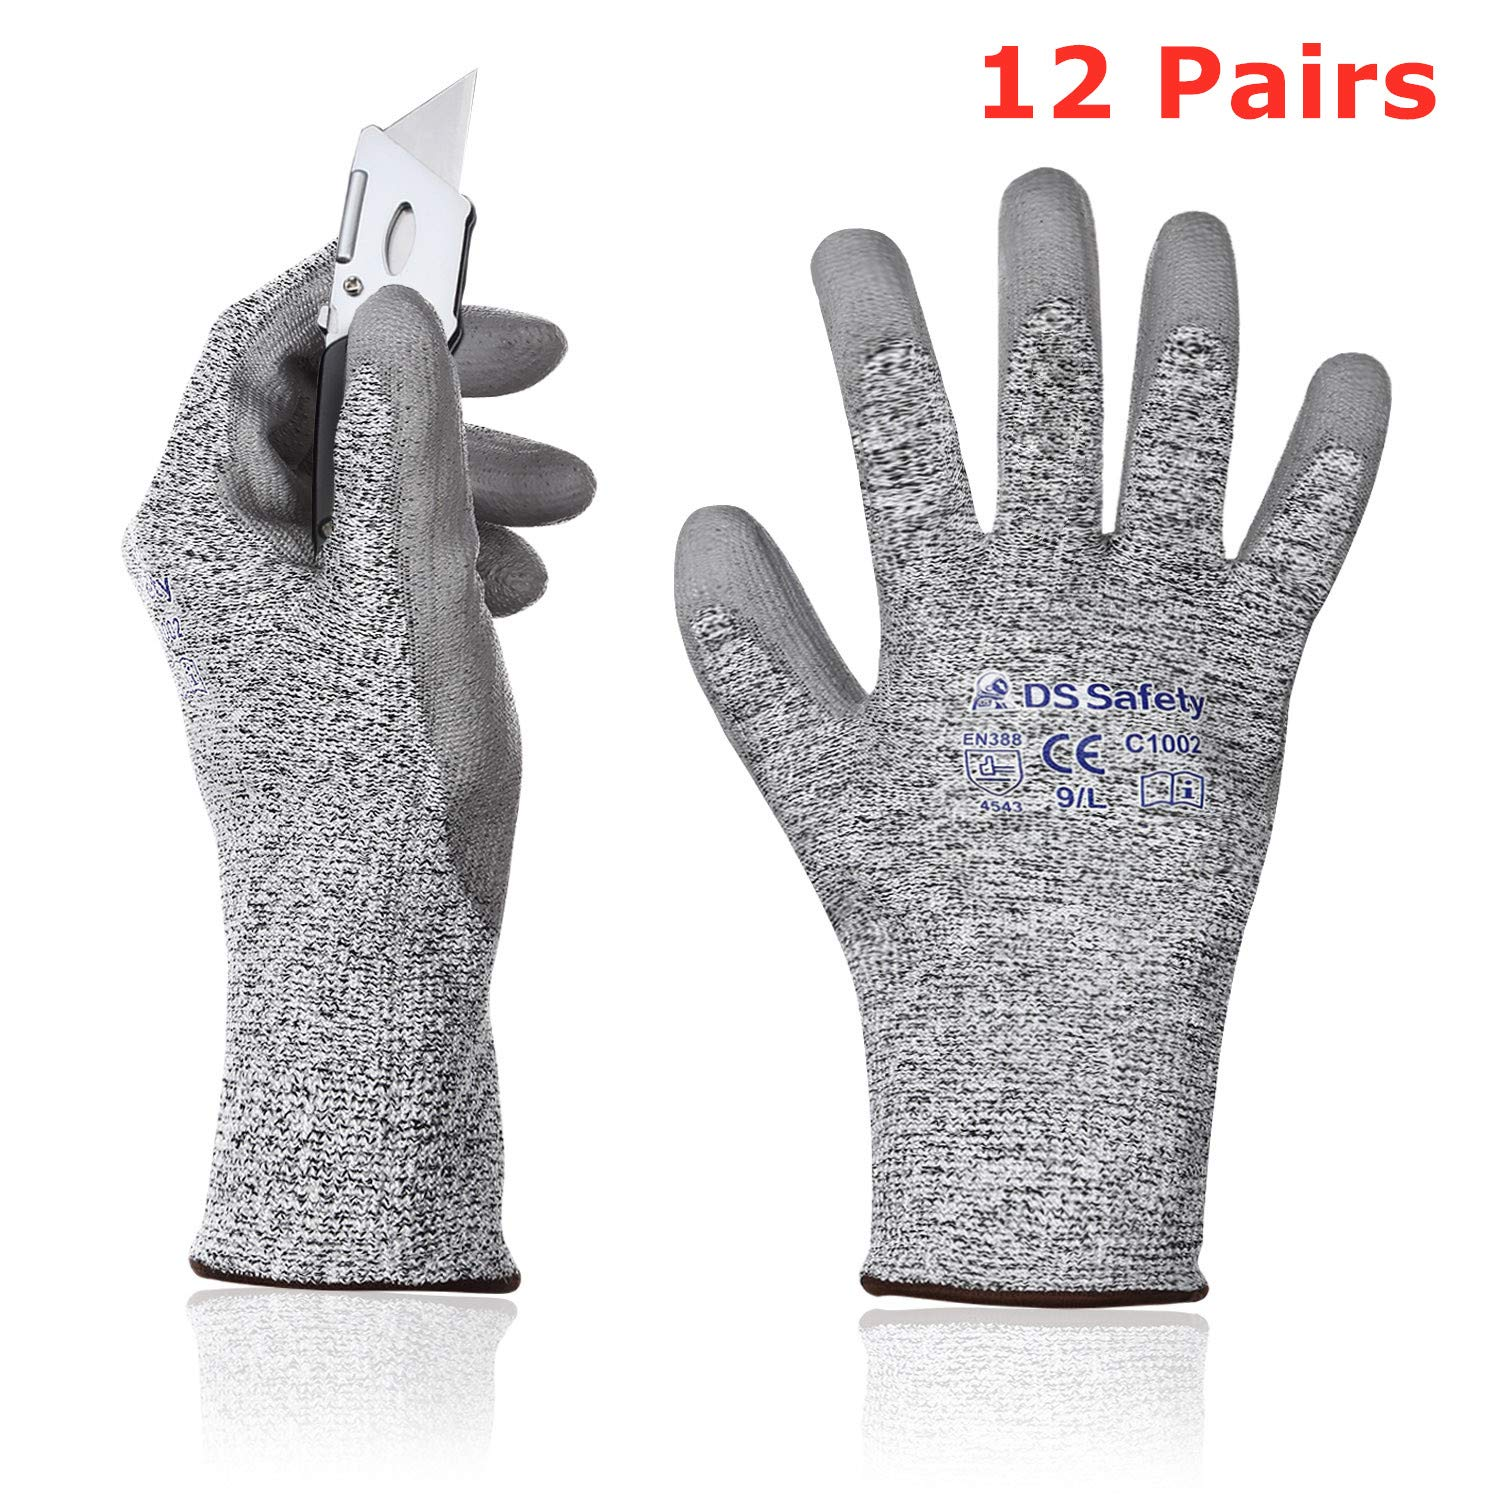 DS Safety C1002 Cut Resistant Work Gloves High Performance Level 5 Protection PU Coated Work Gloves with Durable Power Grip Foam Coated 7D Comfort Stretch Fit Work Gloves Grey 12Pairs(L)